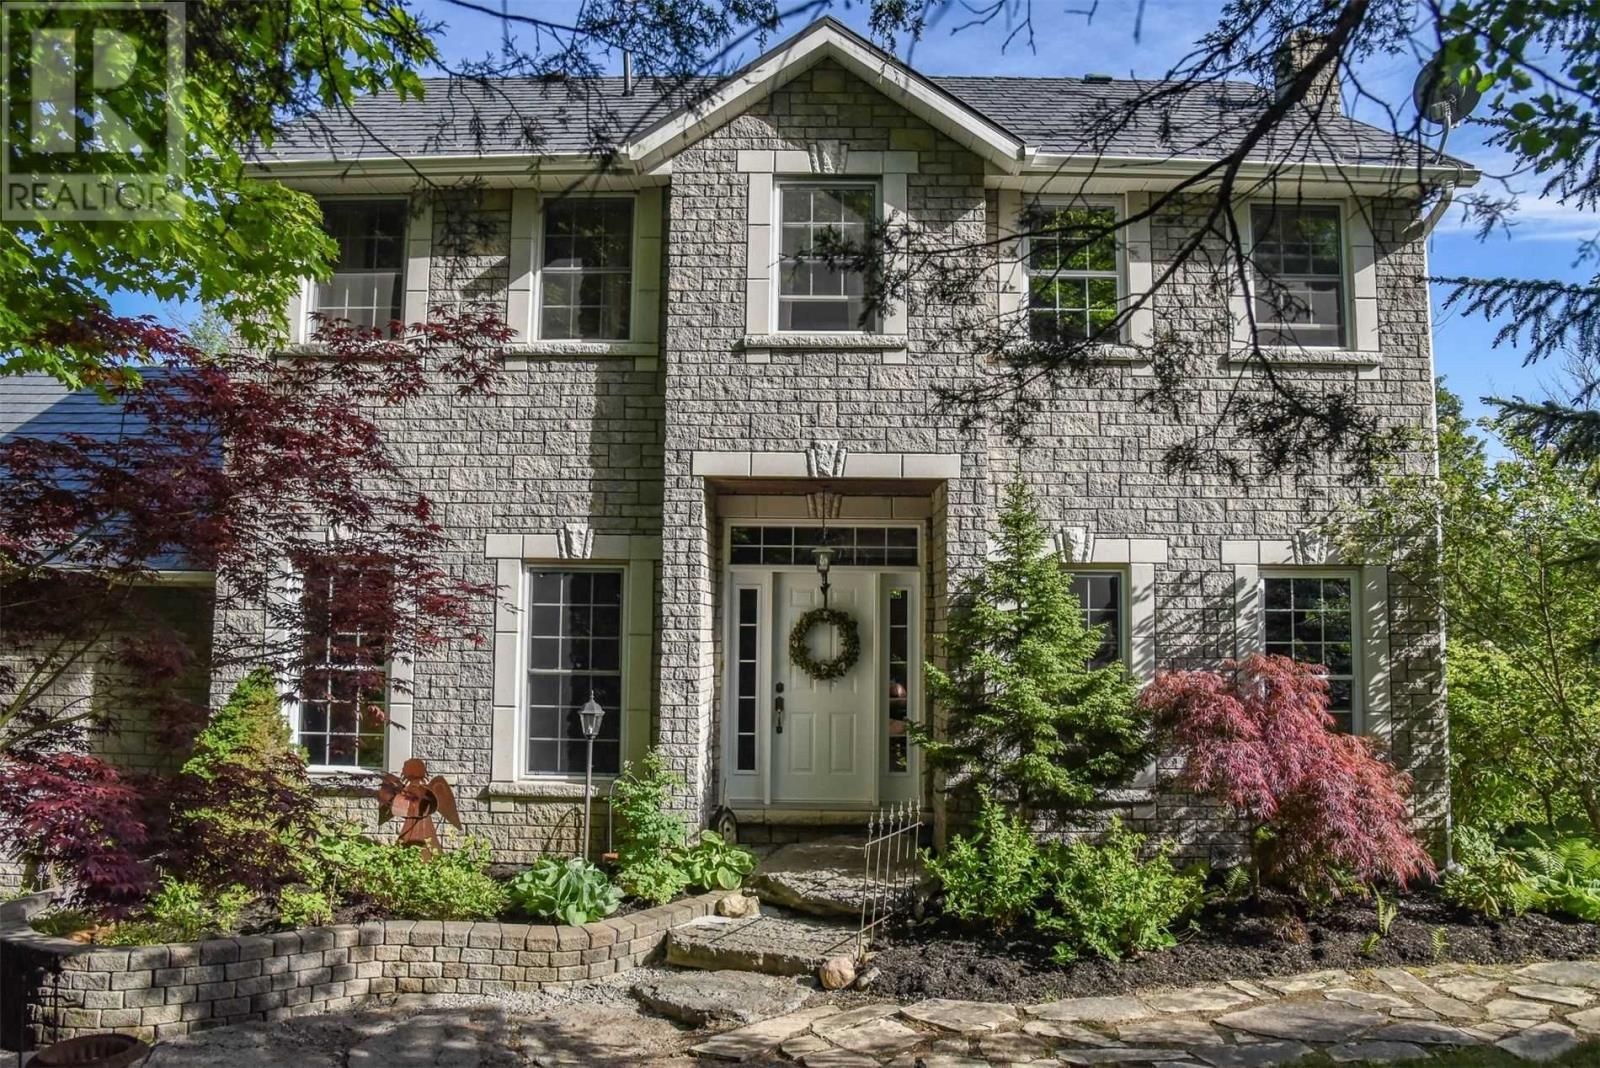 Main Photo: 86 SIMPSON ST in Brighton: House for sale : MLS®# X5269828